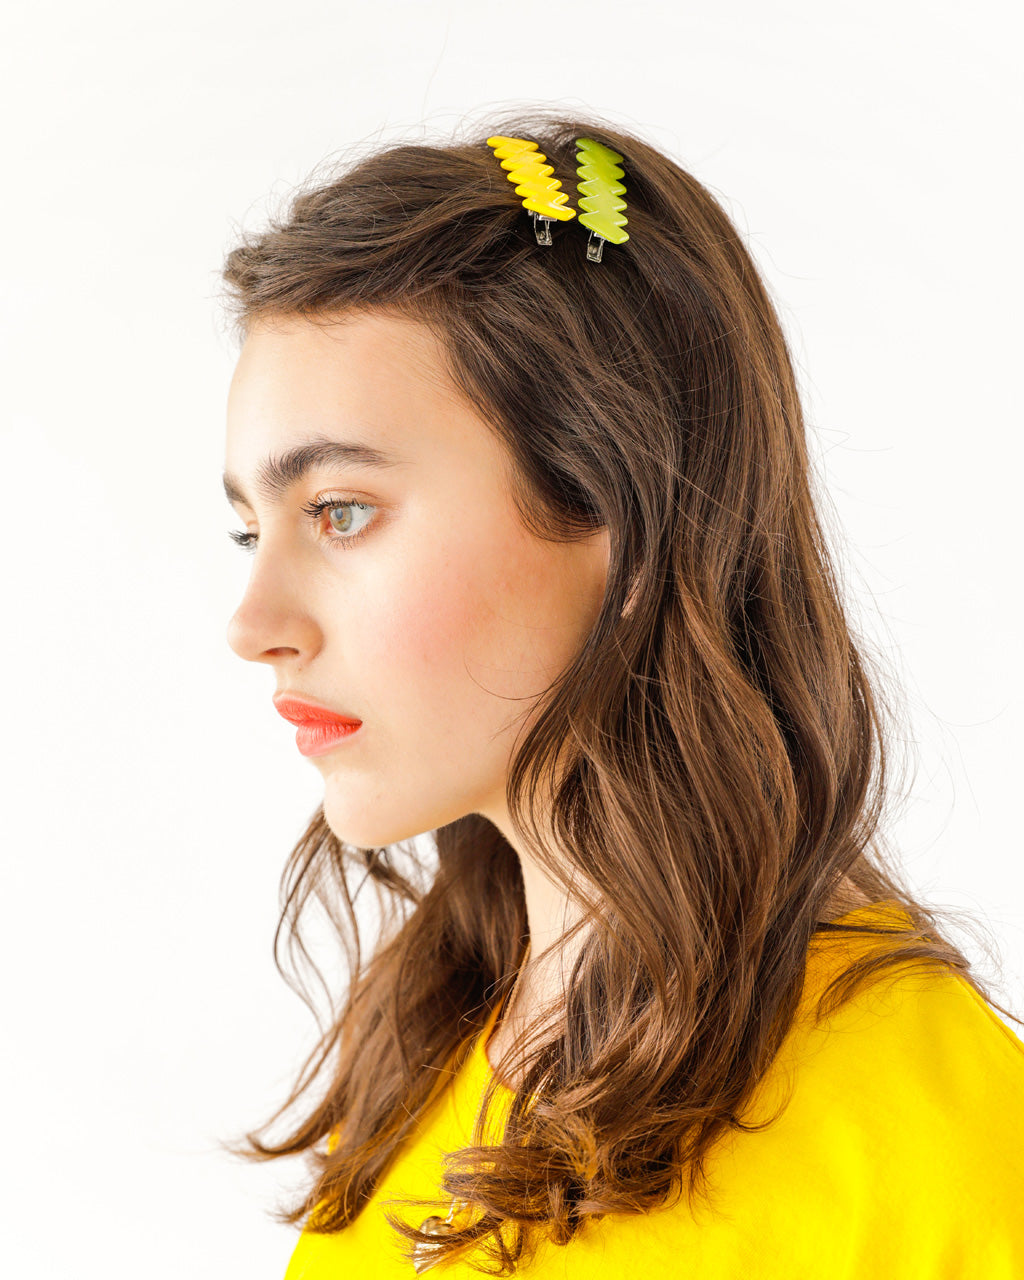 brunette model shown wearing one yellow and one green hair clip